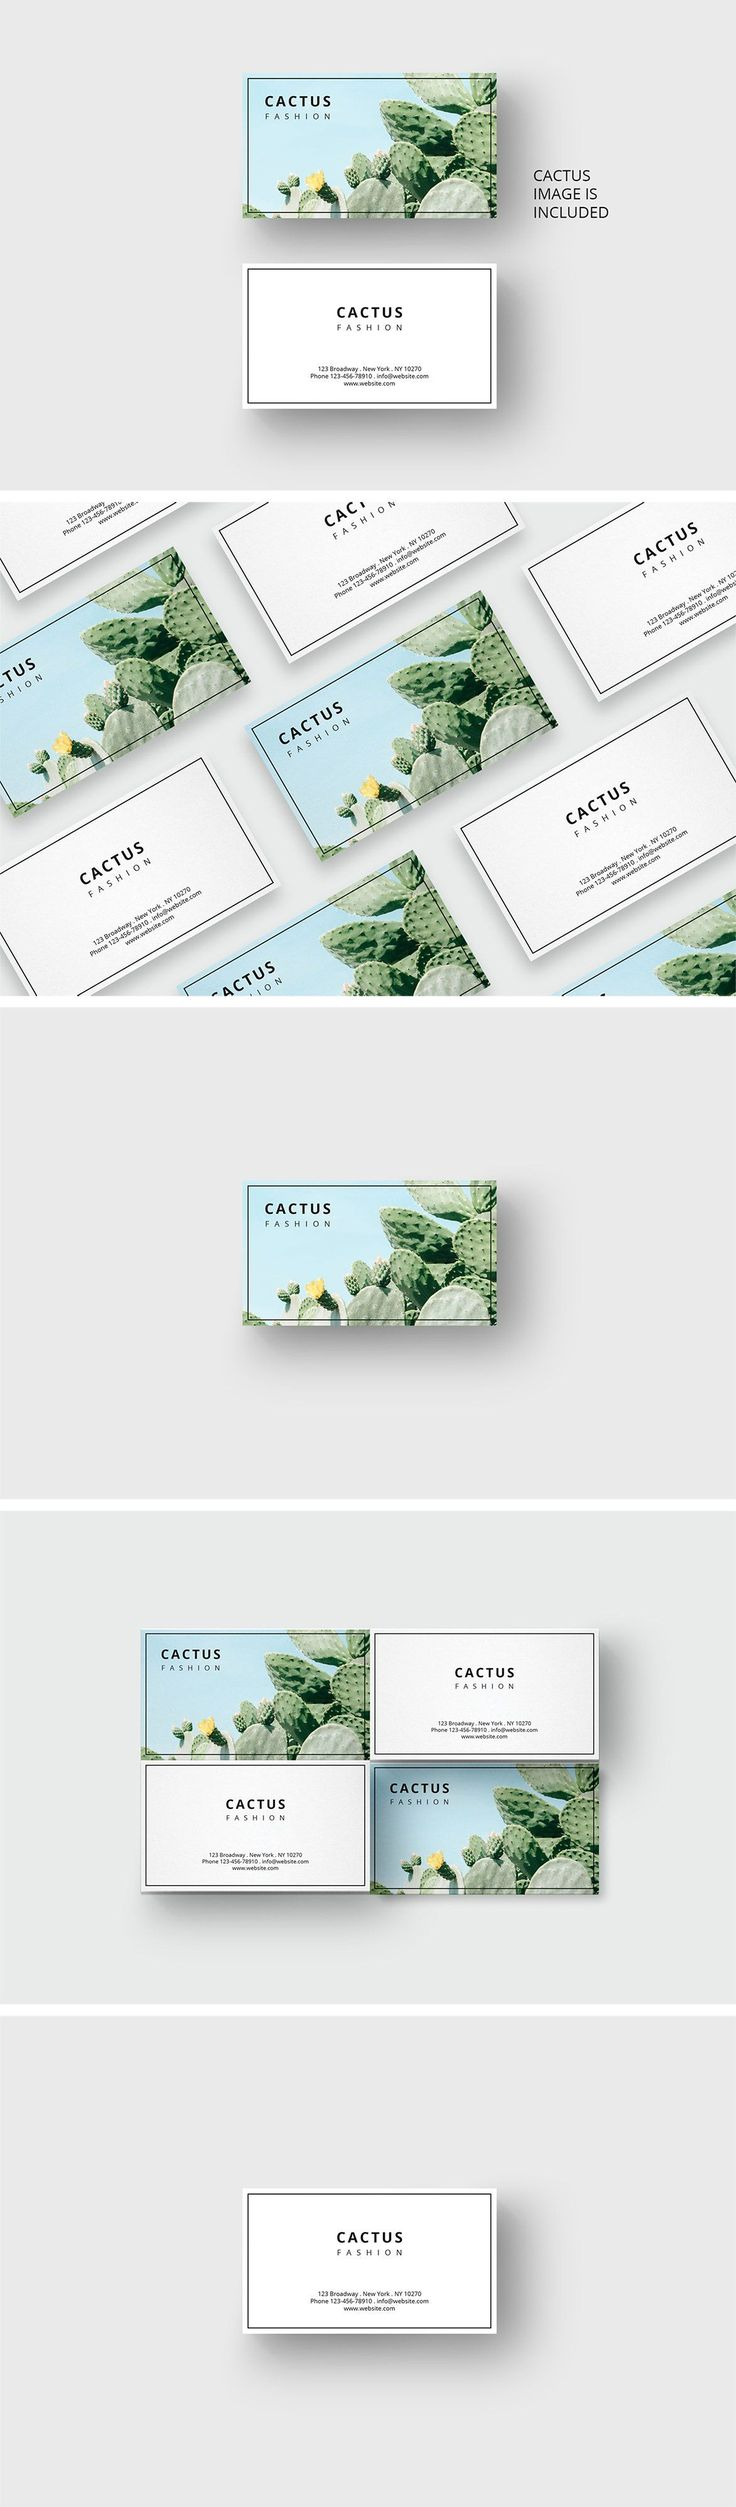 Cactus business card template by AgataCreate #ad #UniqueBusinessCards